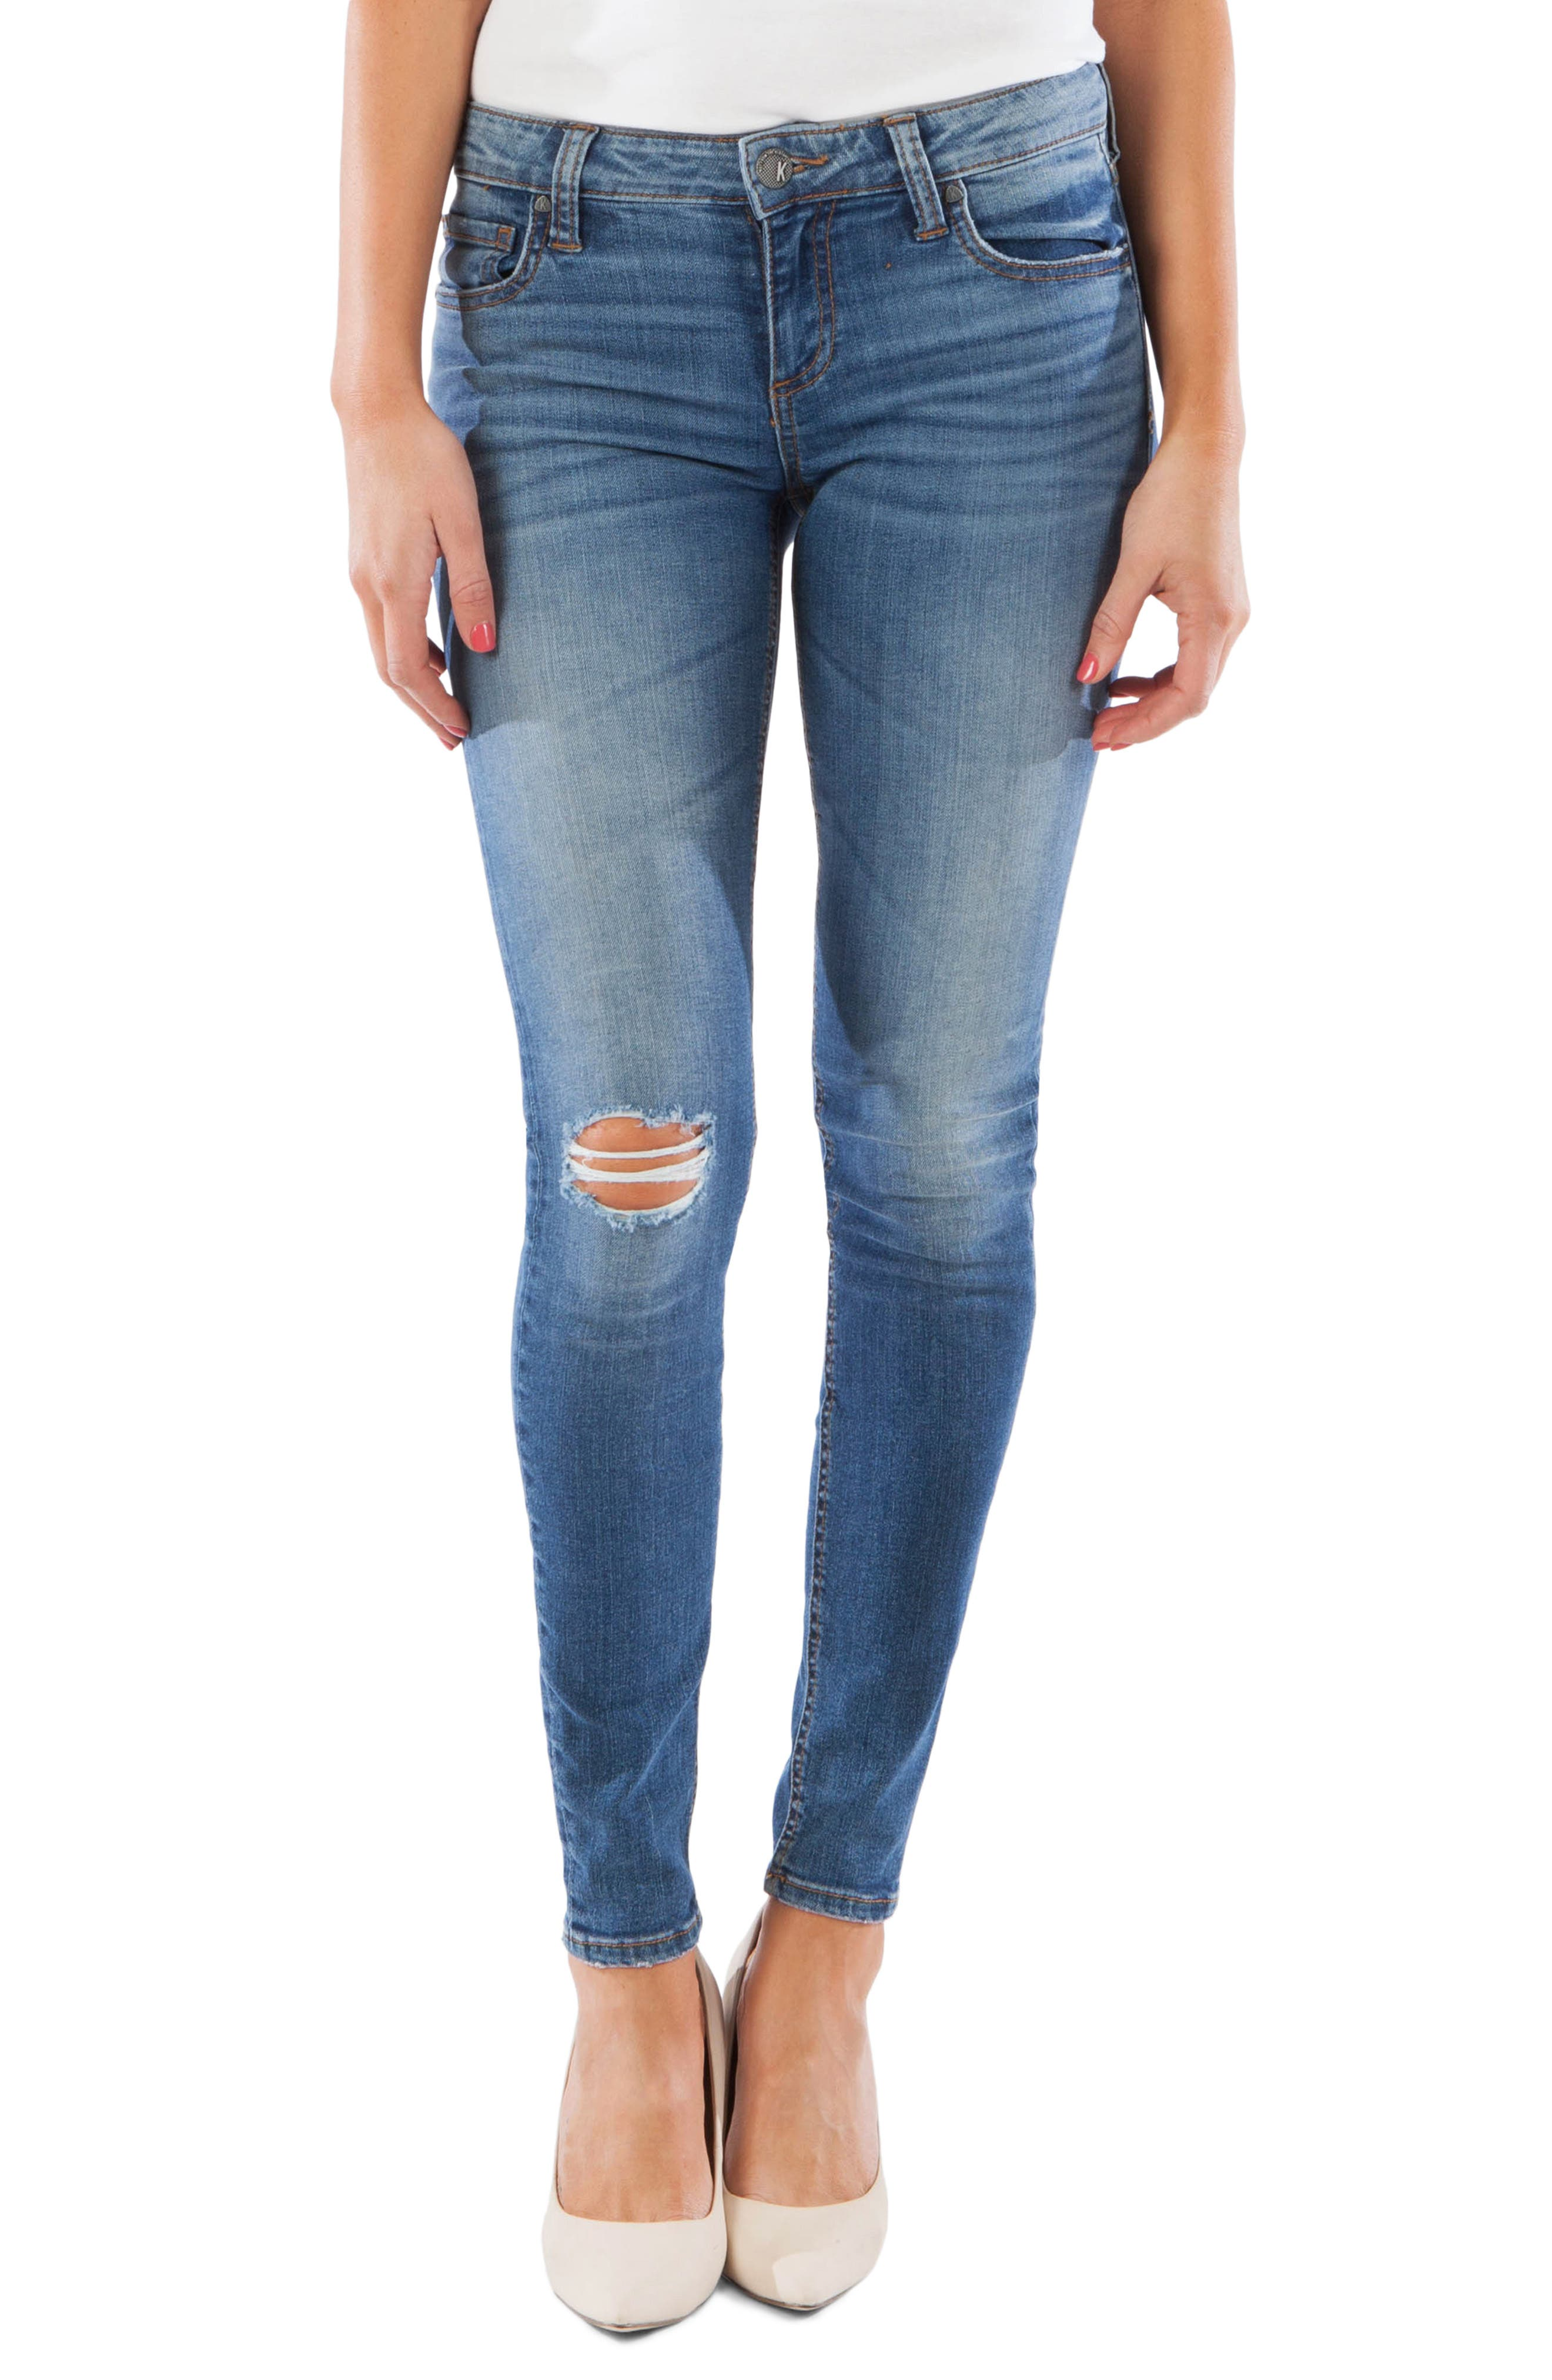 Kut From The Kloth Mia Ripped Toothpick Skinny Jeans, Blue